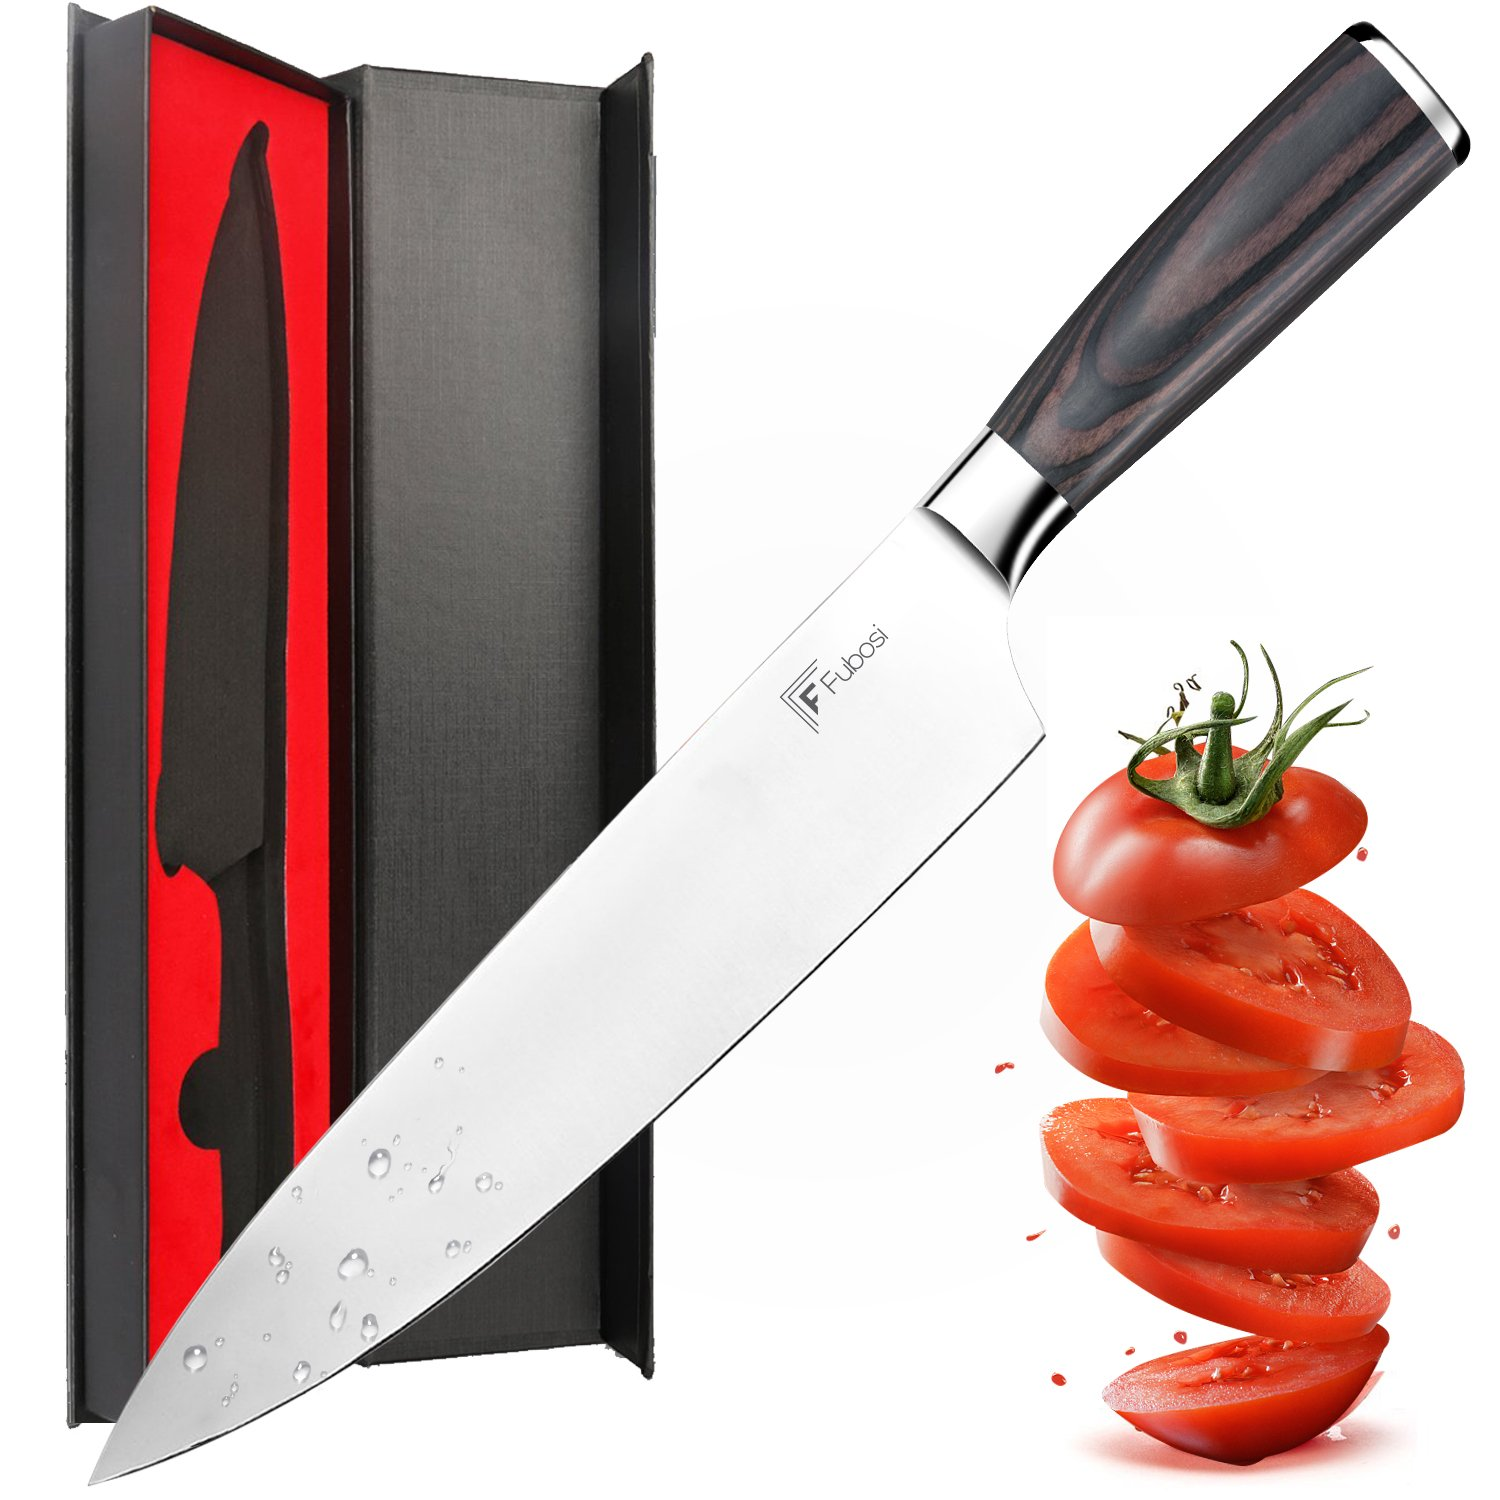 Chef Knife,Fubosi Chef's Knife 8 inches, Professional Kitchen Sharp Knives Fruit Vegetable Knife, High Carbon Japanese Stainless Steel Gyutou Knives With Ergonomic Handle by Fubosi